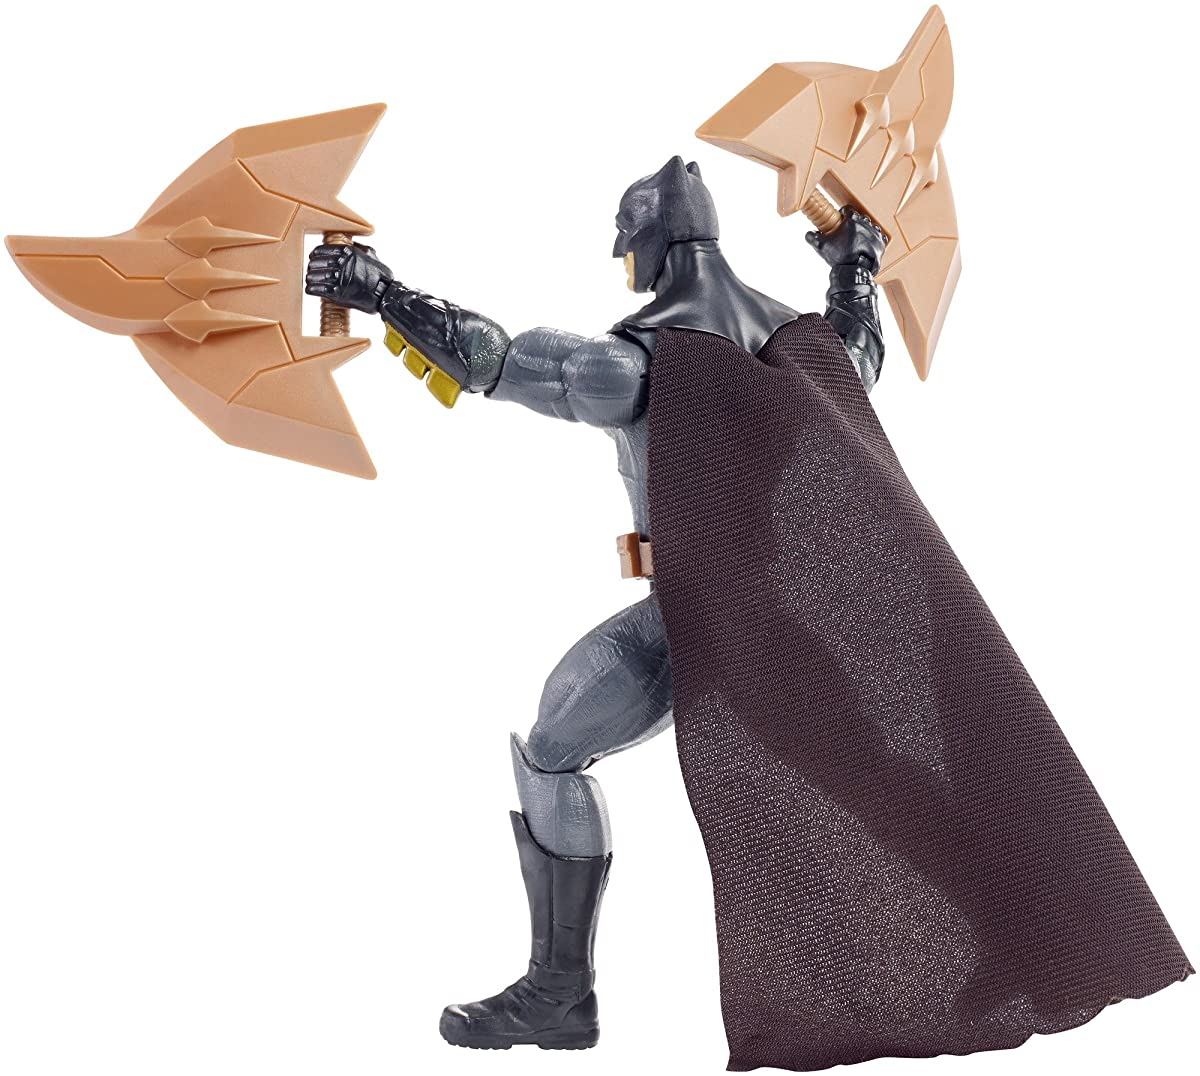 DC Justice League Batman Figure, 6""